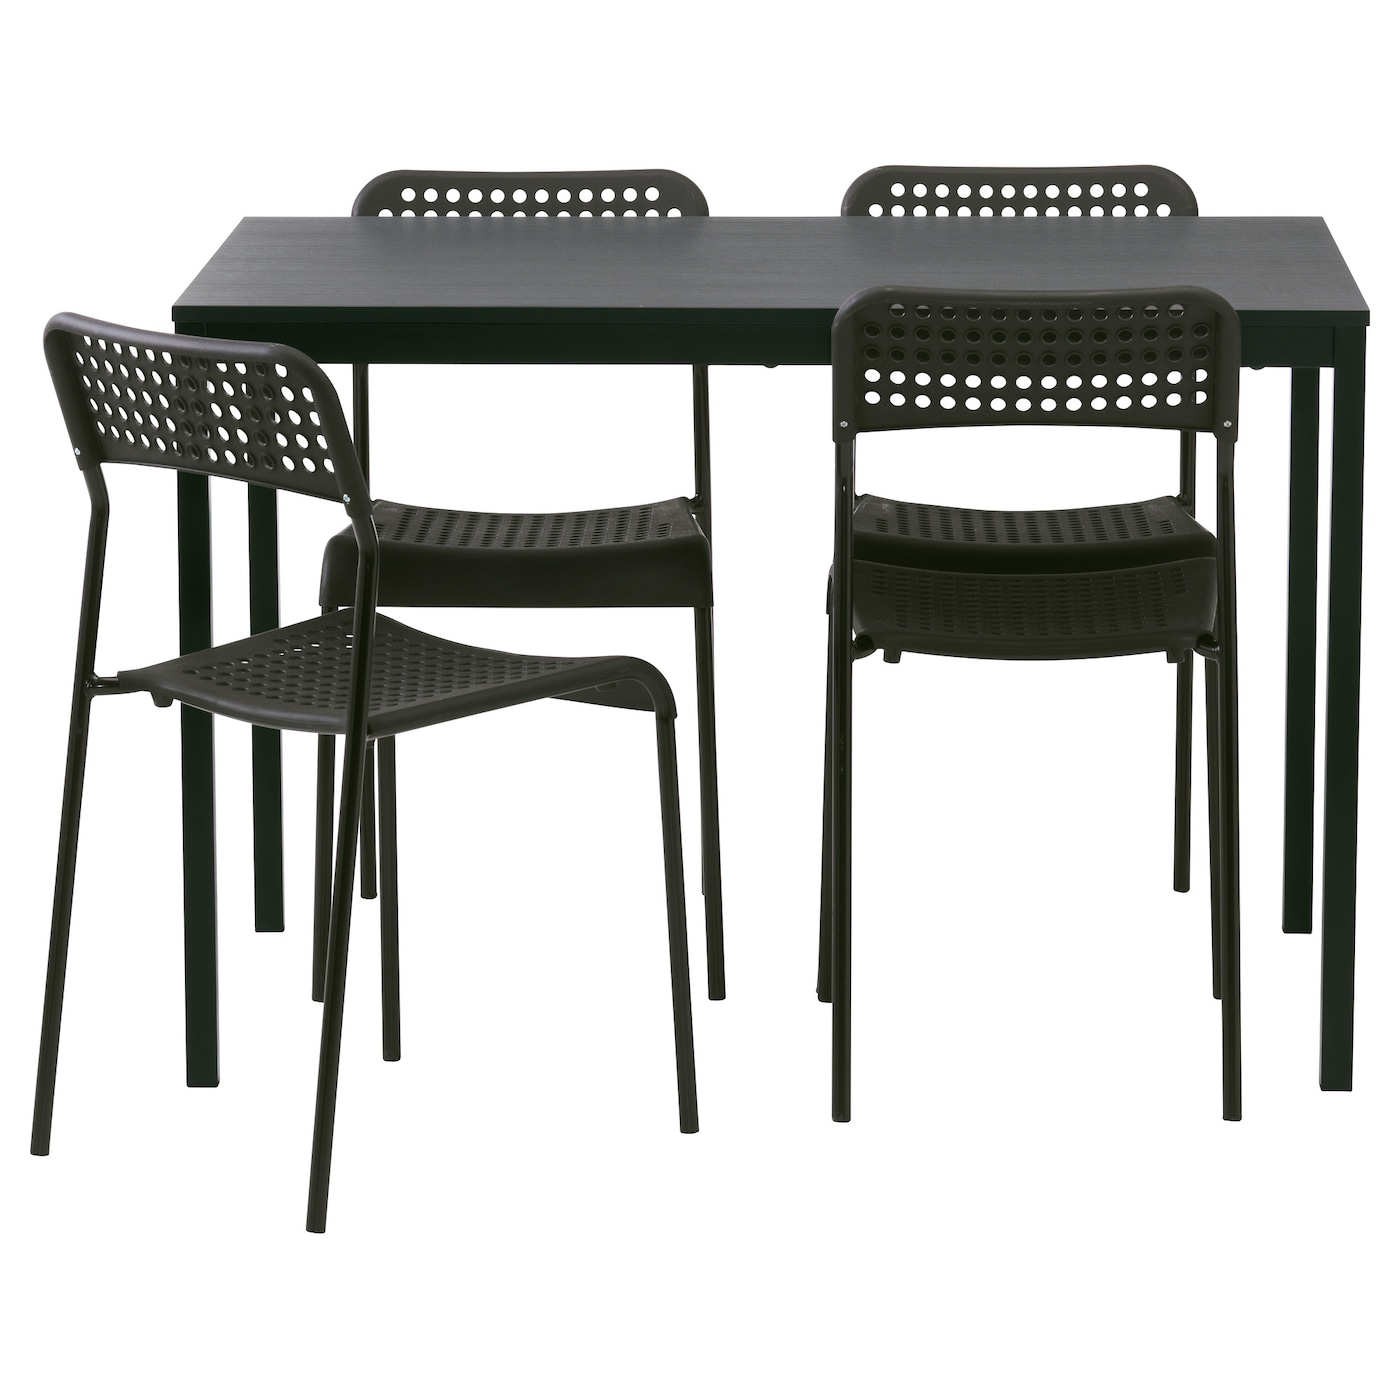 t rend adde table and 4 chairs black 110 cm ikea. Black Bedroom Furniture Sets. Home Design Ideas